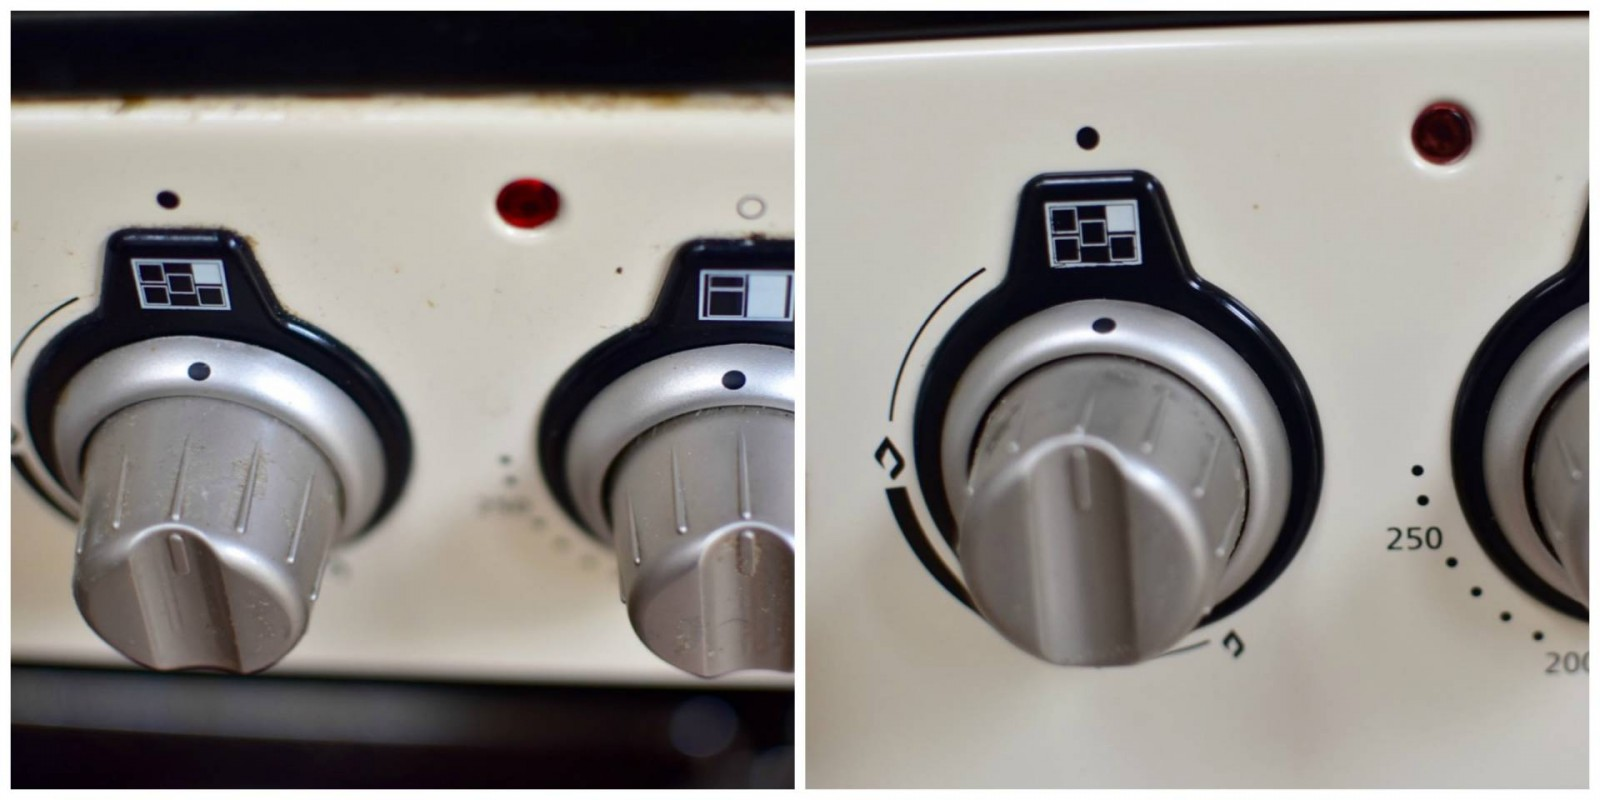 A review of the Vax steam fresh power plus